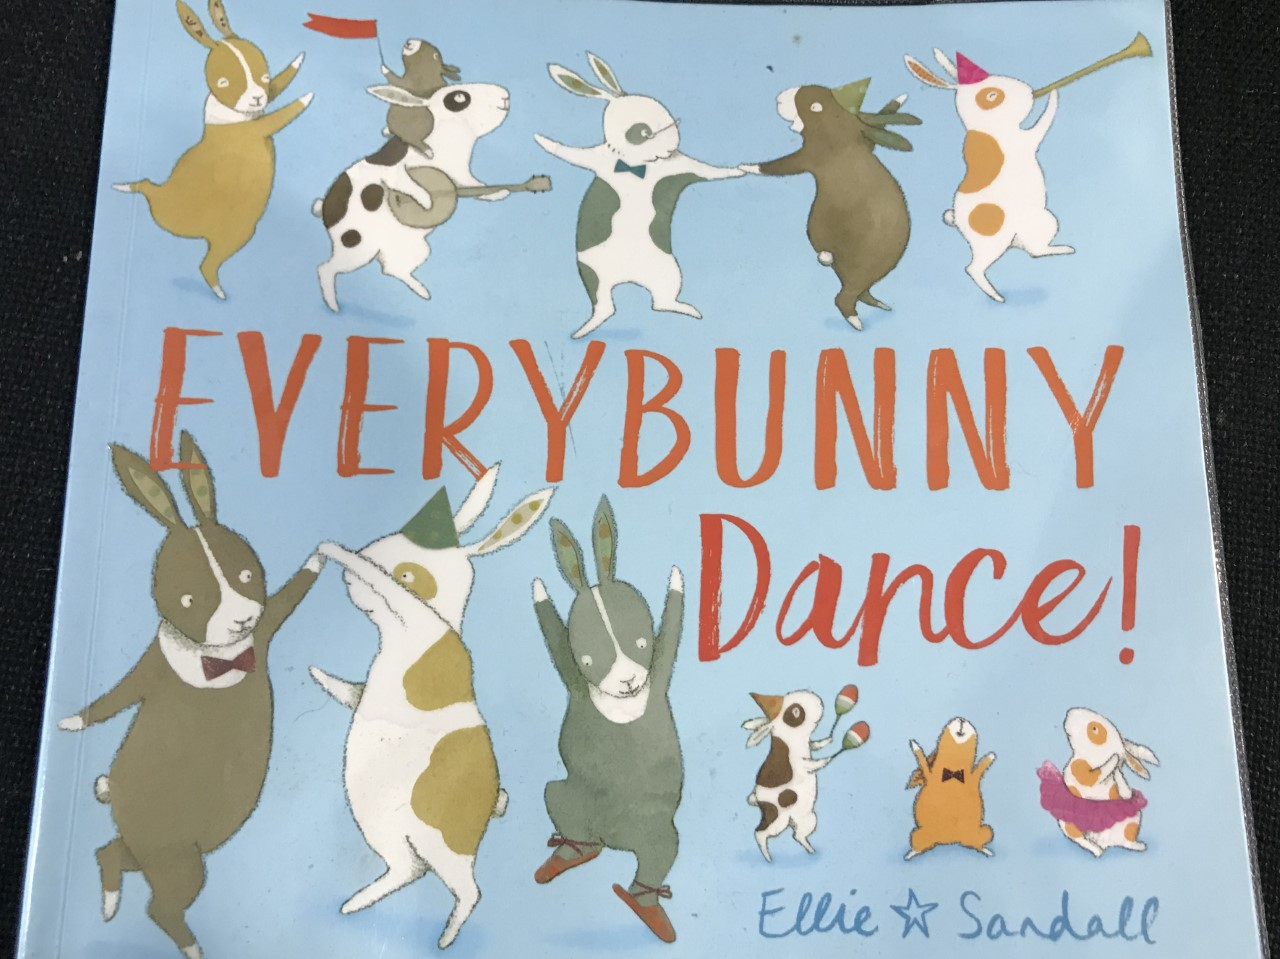 Storytelling, singing and sensory fun aimed at under 4's based on the story Everybunny Dance!